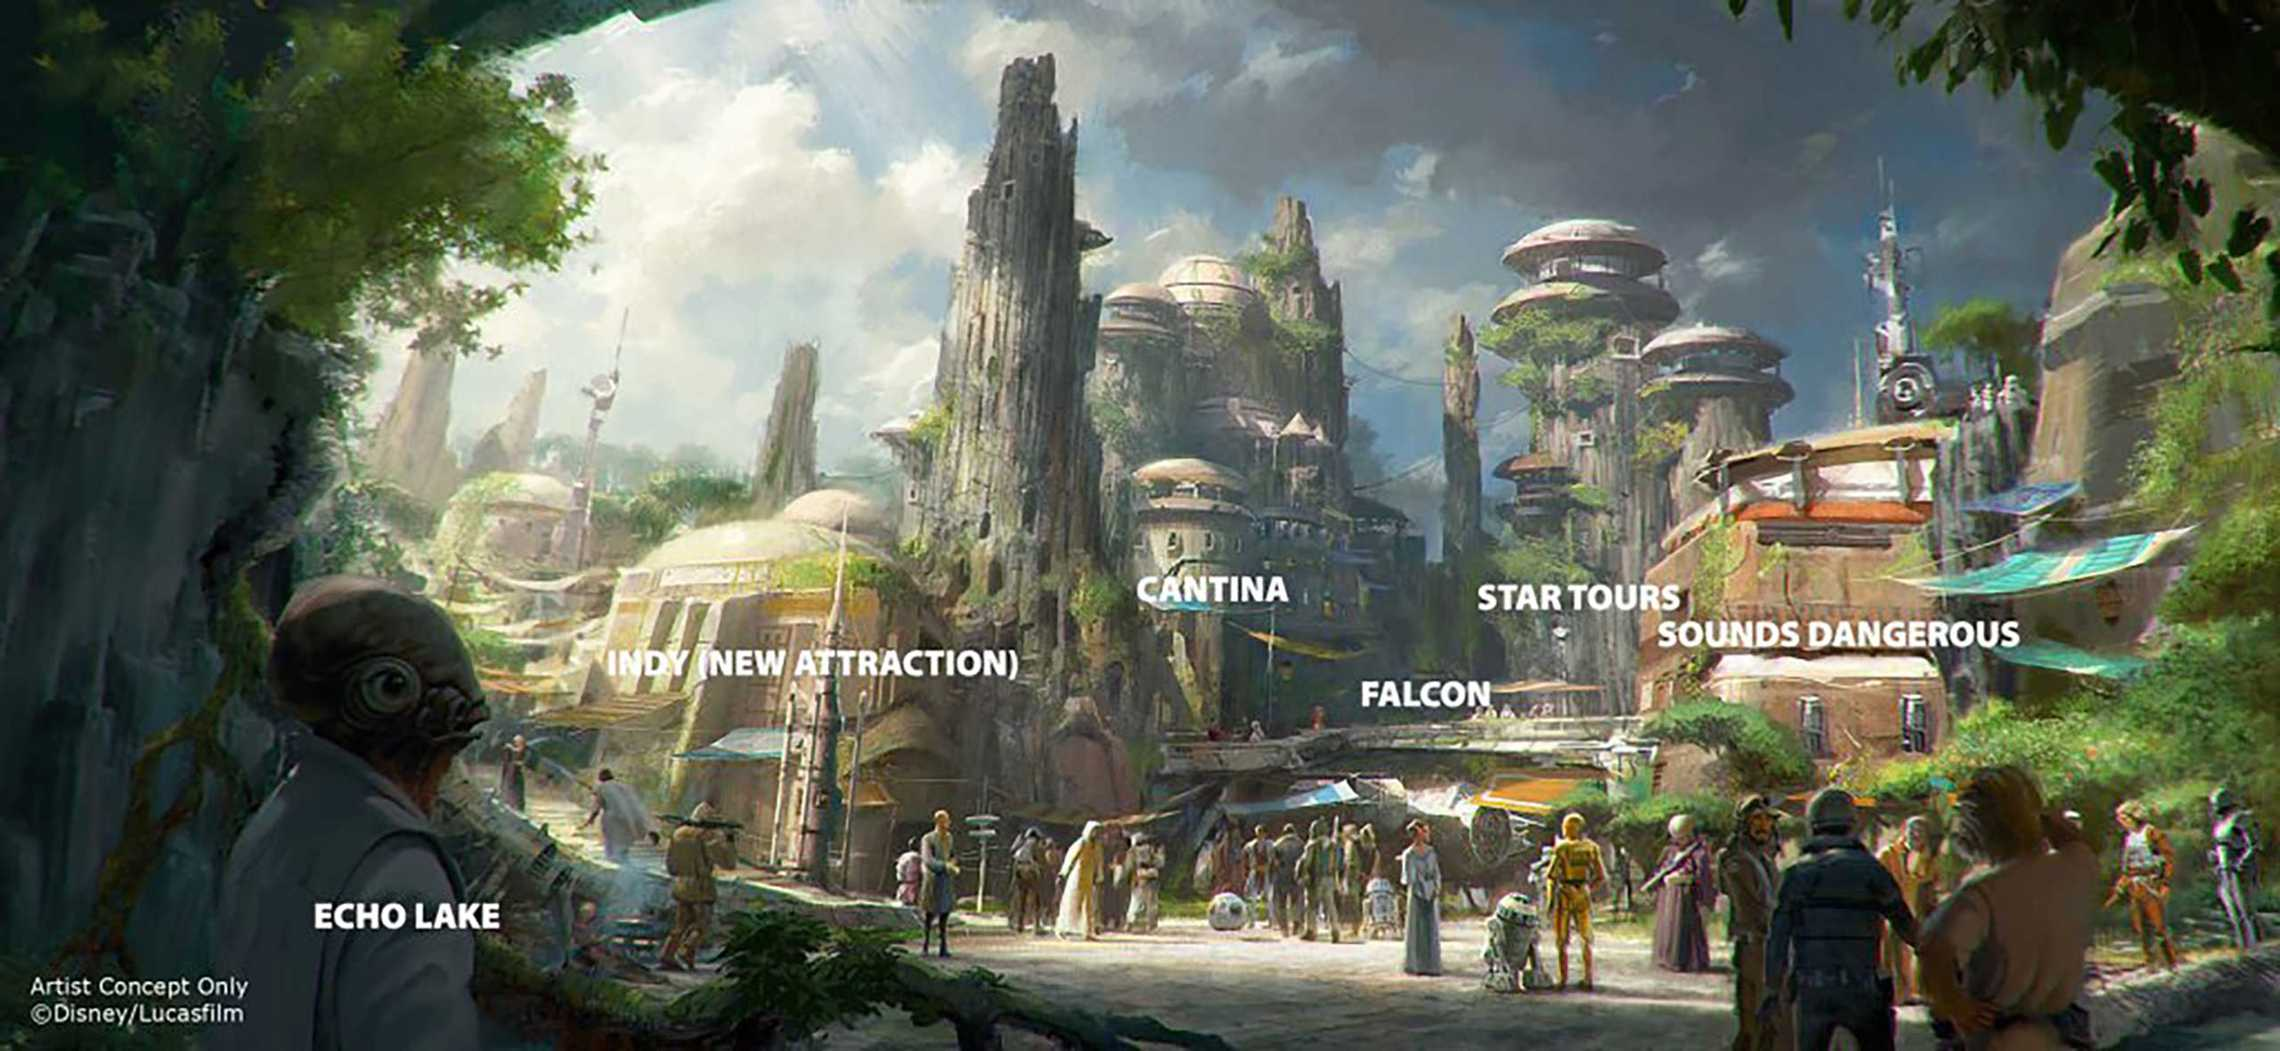 Possible attraction layout in Star Wars Land at Disney's Hollywood Studios. By Ignohippo.